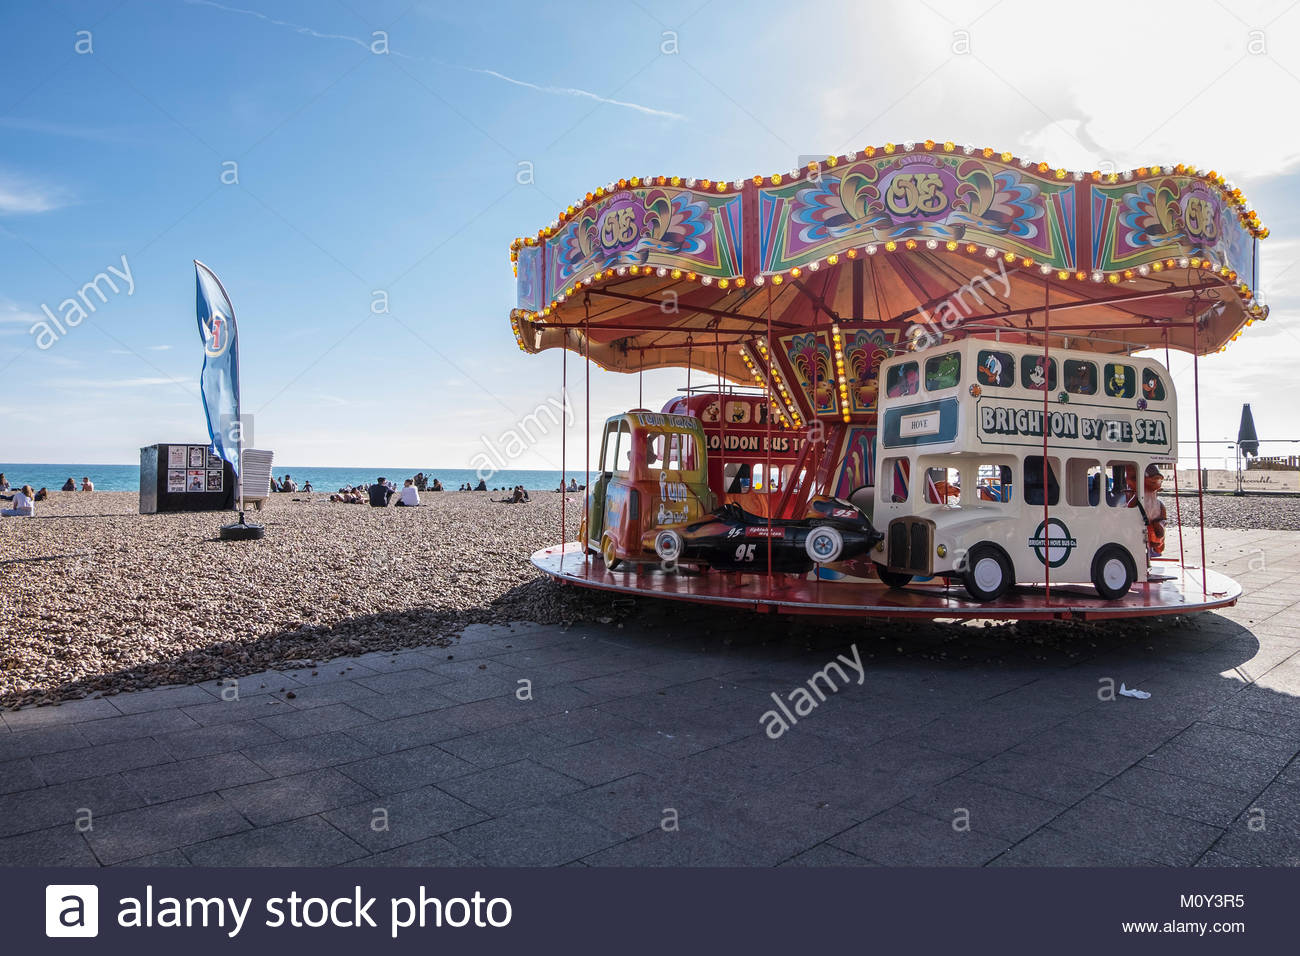 pictures of BRIGHTON, UK with the Pier, the gardens, the beaches and the city centre streets - Stock Image